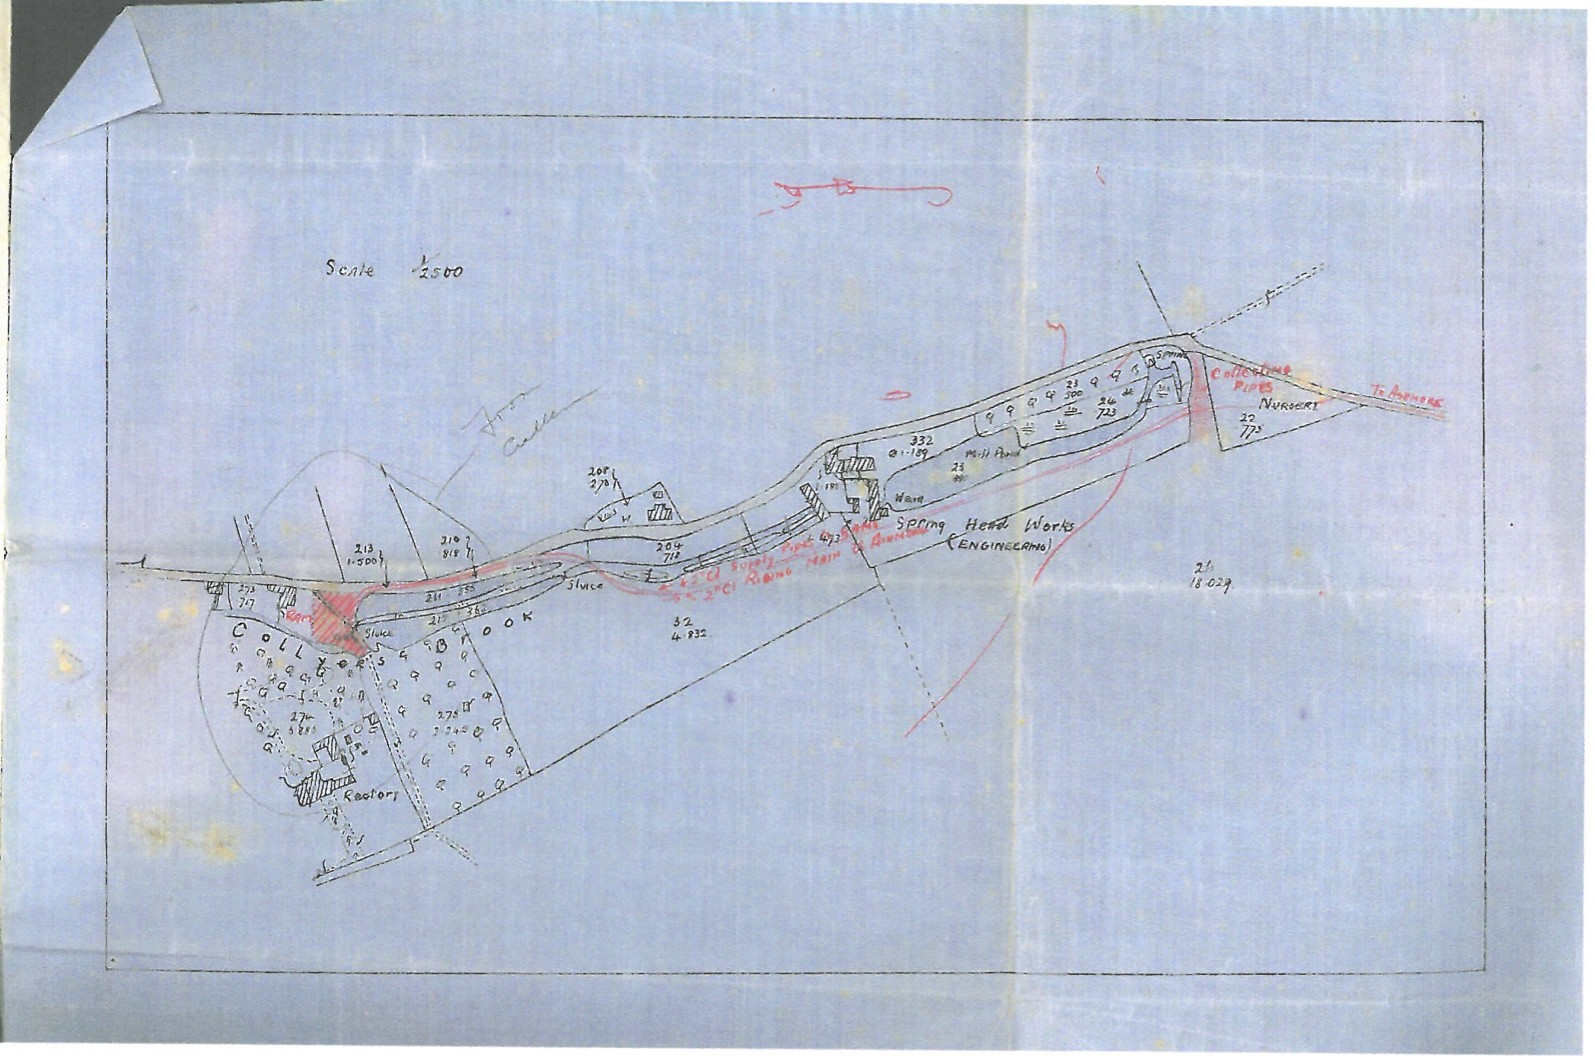 Plan from Deed of Title for Middle Mill Dam